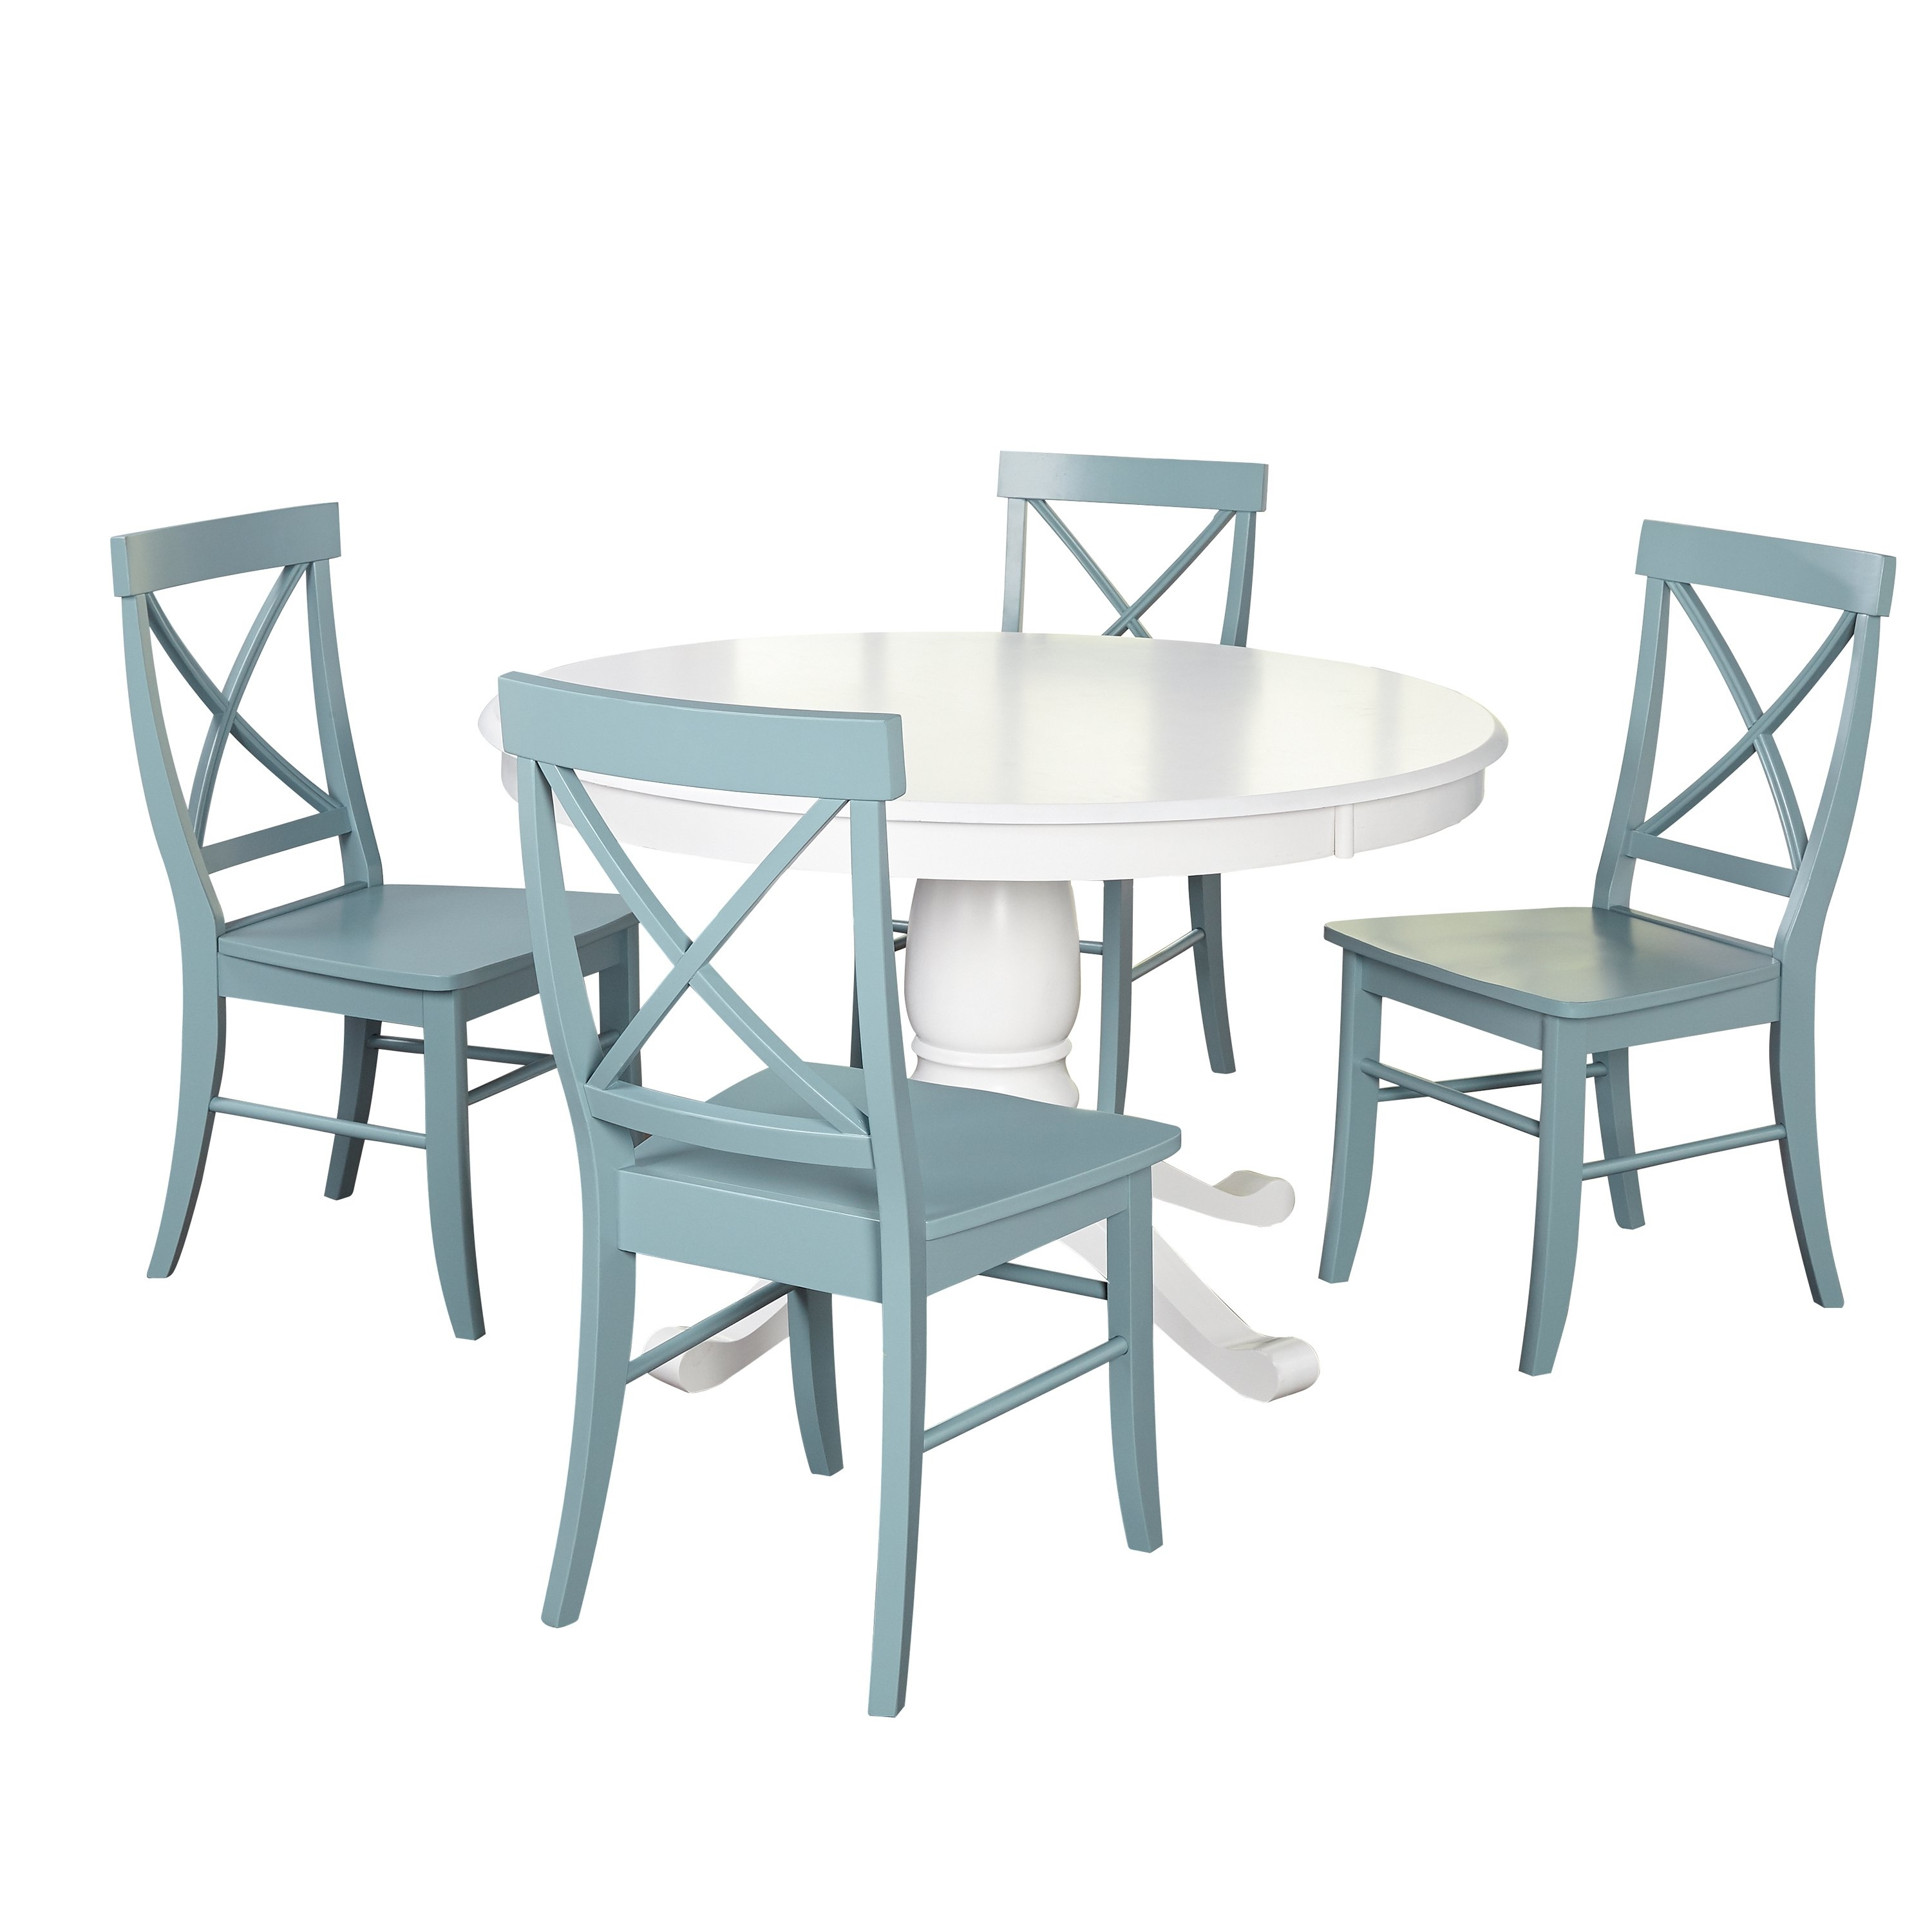 Widely Used Dawson Dining Tables With Regard To Shop Simple Living 5 Piece Dawson Dining Set – Free Shipping Today (View 23 of 25)